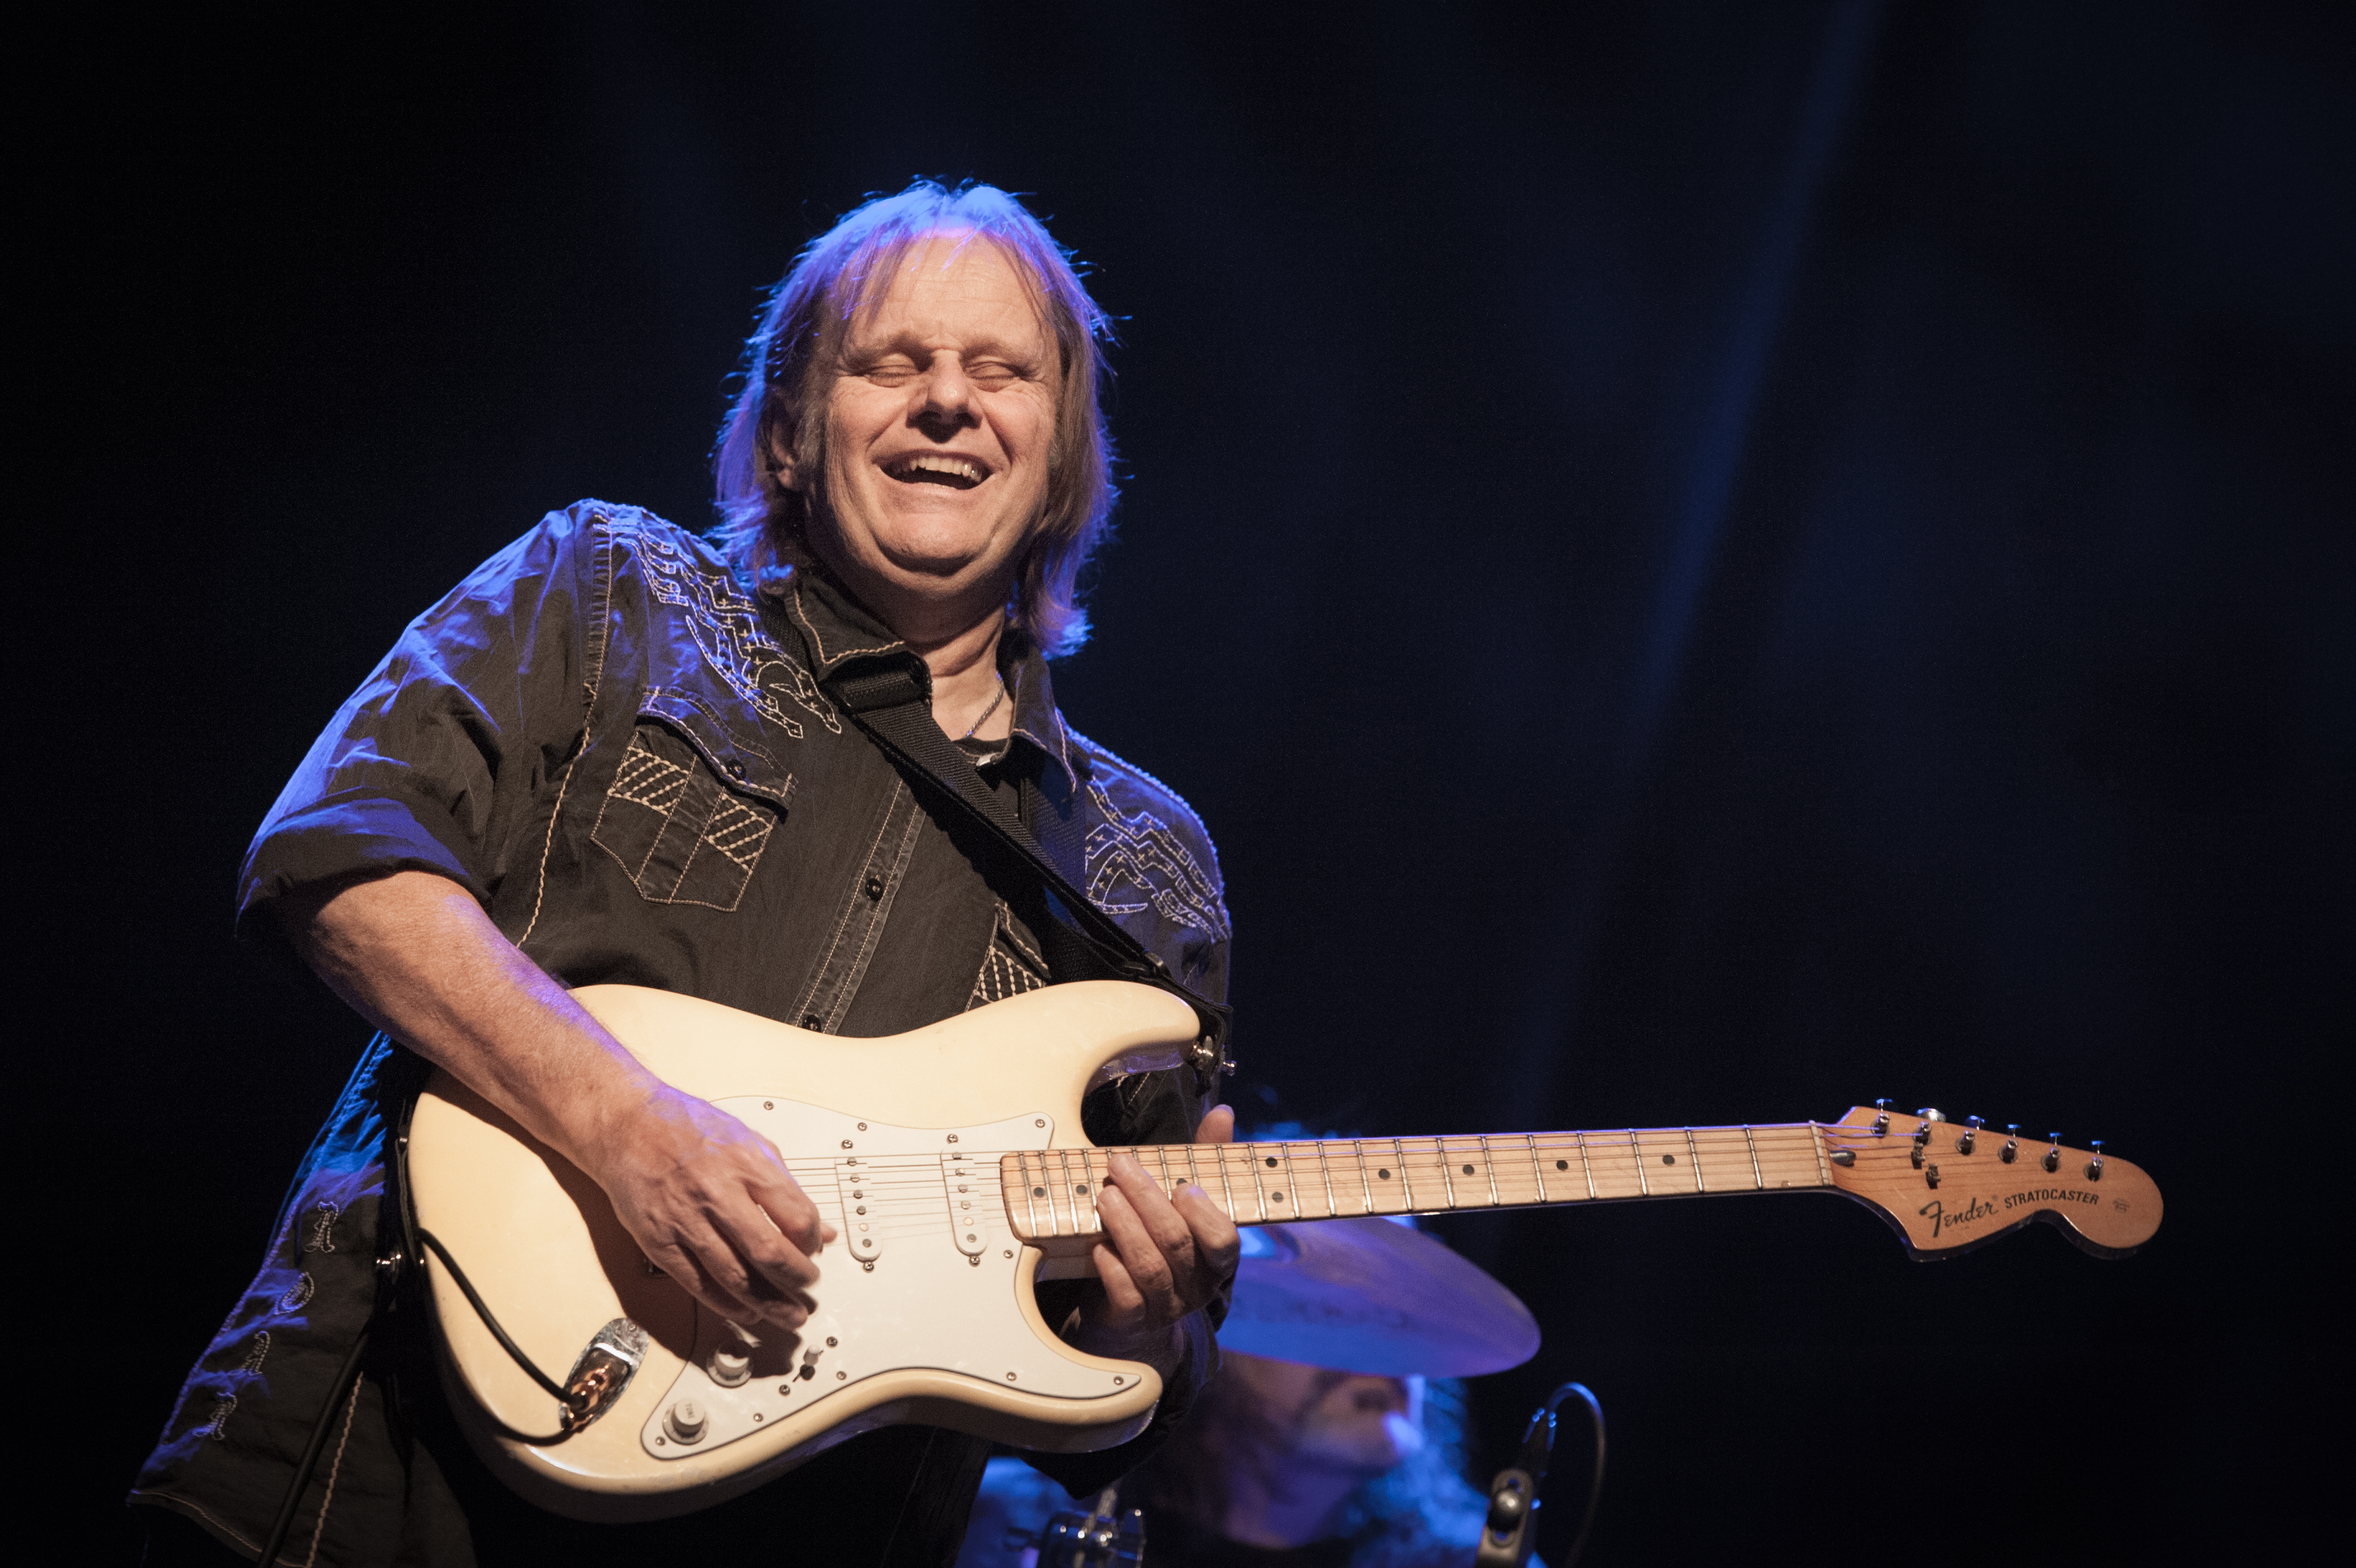 image of Walter Trout by Marco van Rooijen